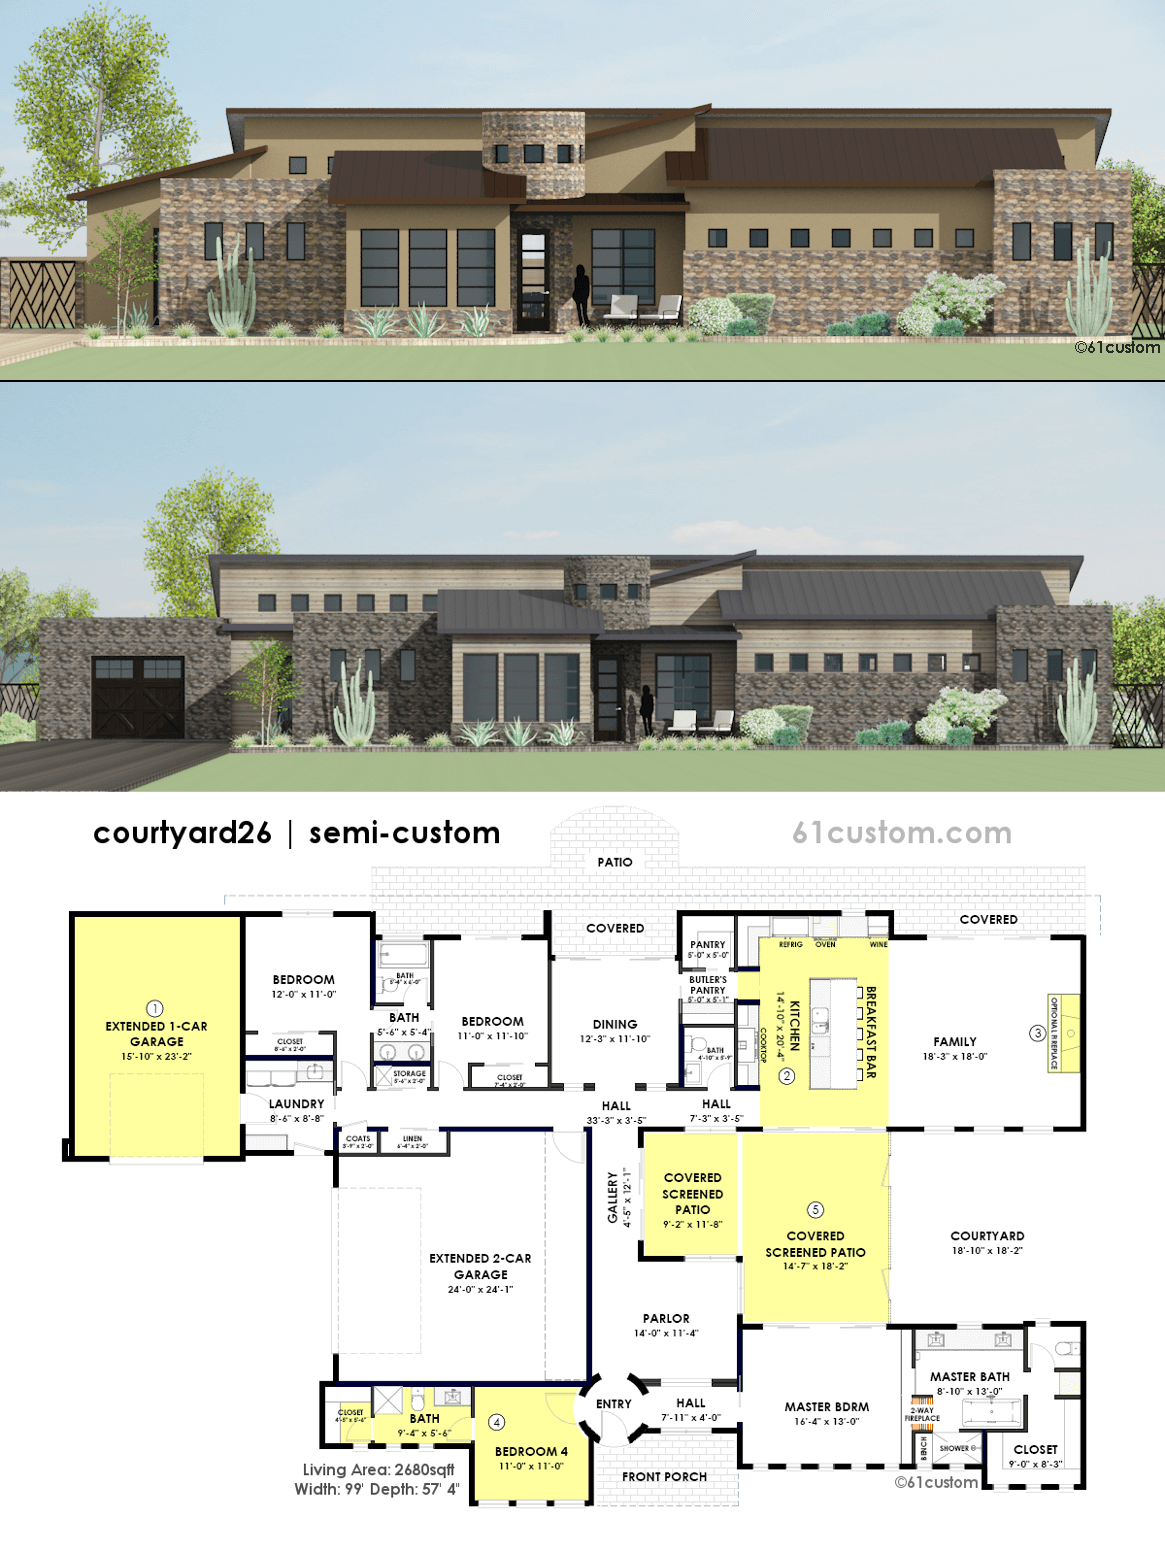 Contemporary side courtyard house plan 61custom for Modern house blueprints